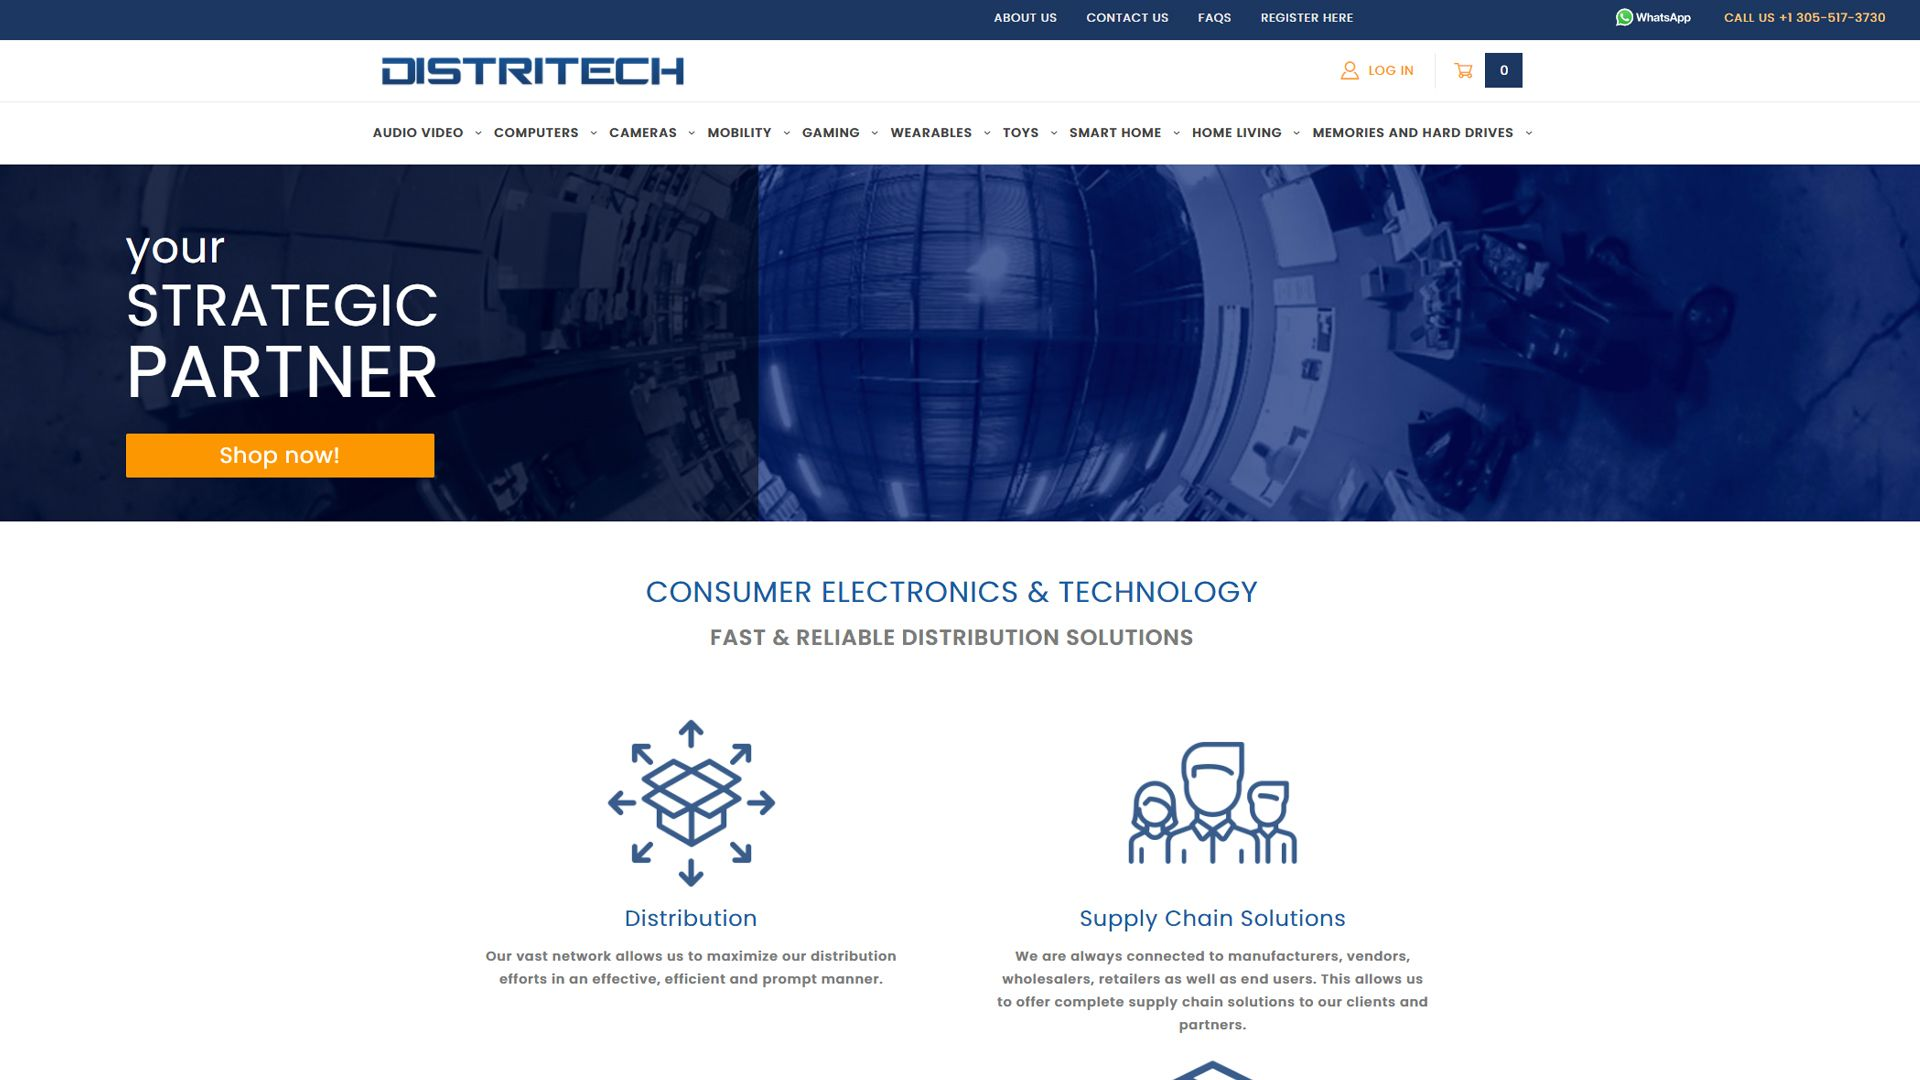 B2B Technology wholesaler site on Miva.com